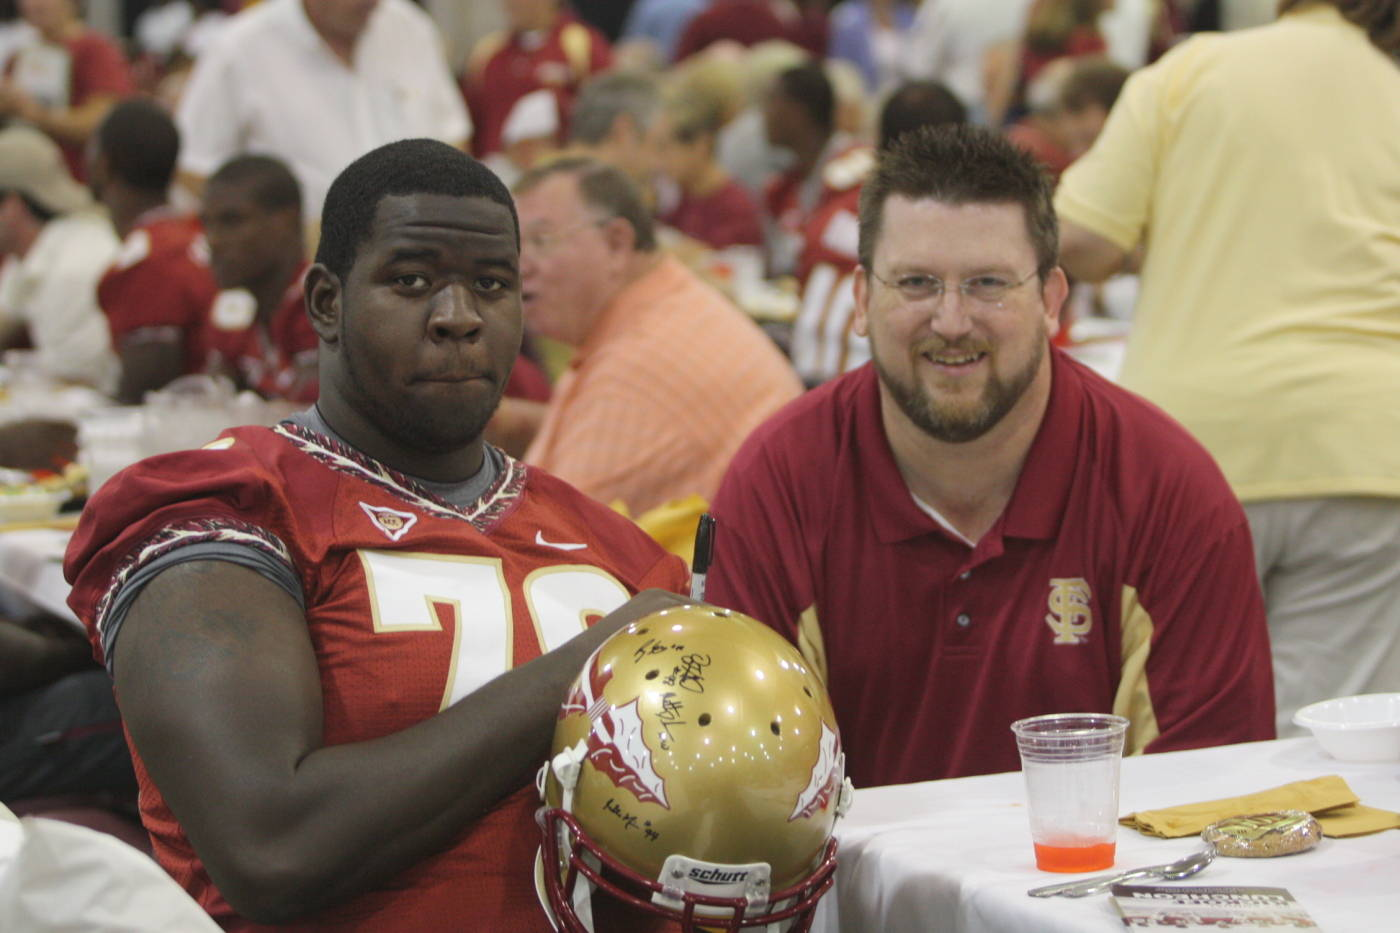 Antwane Greenlee at the 2009 Football Luncheon.